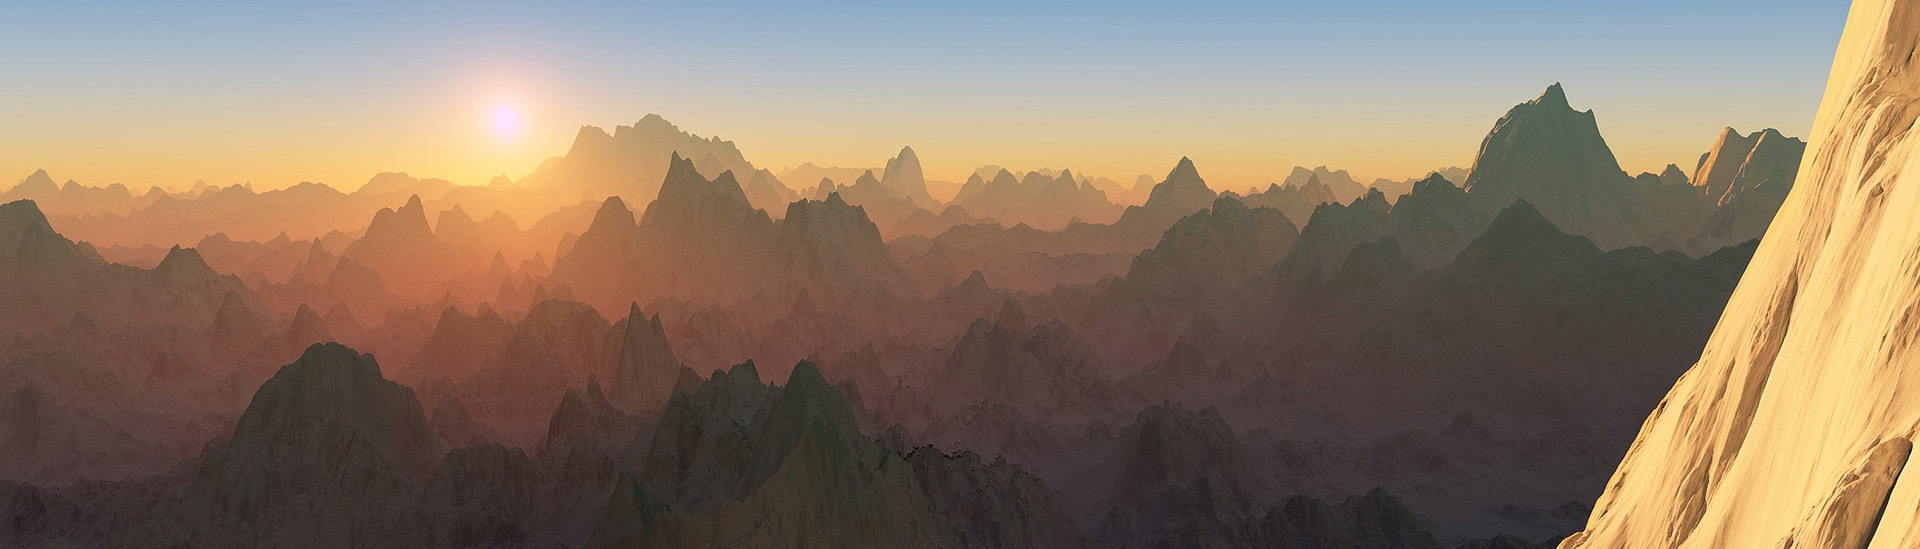 Hindu Kush Mountains